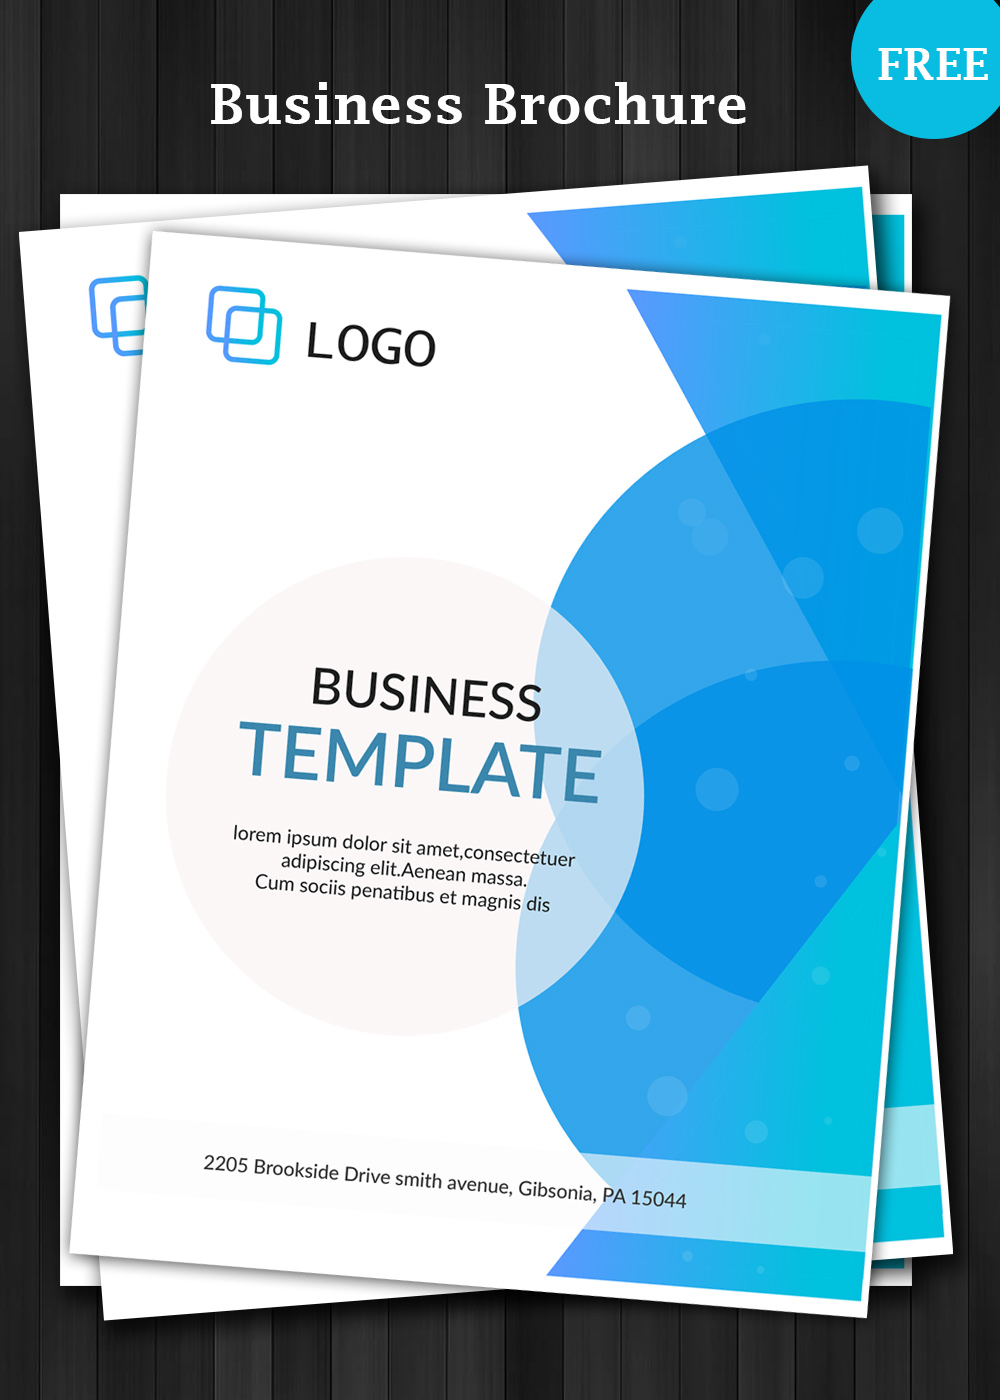 company brochure template free download - business brochure template